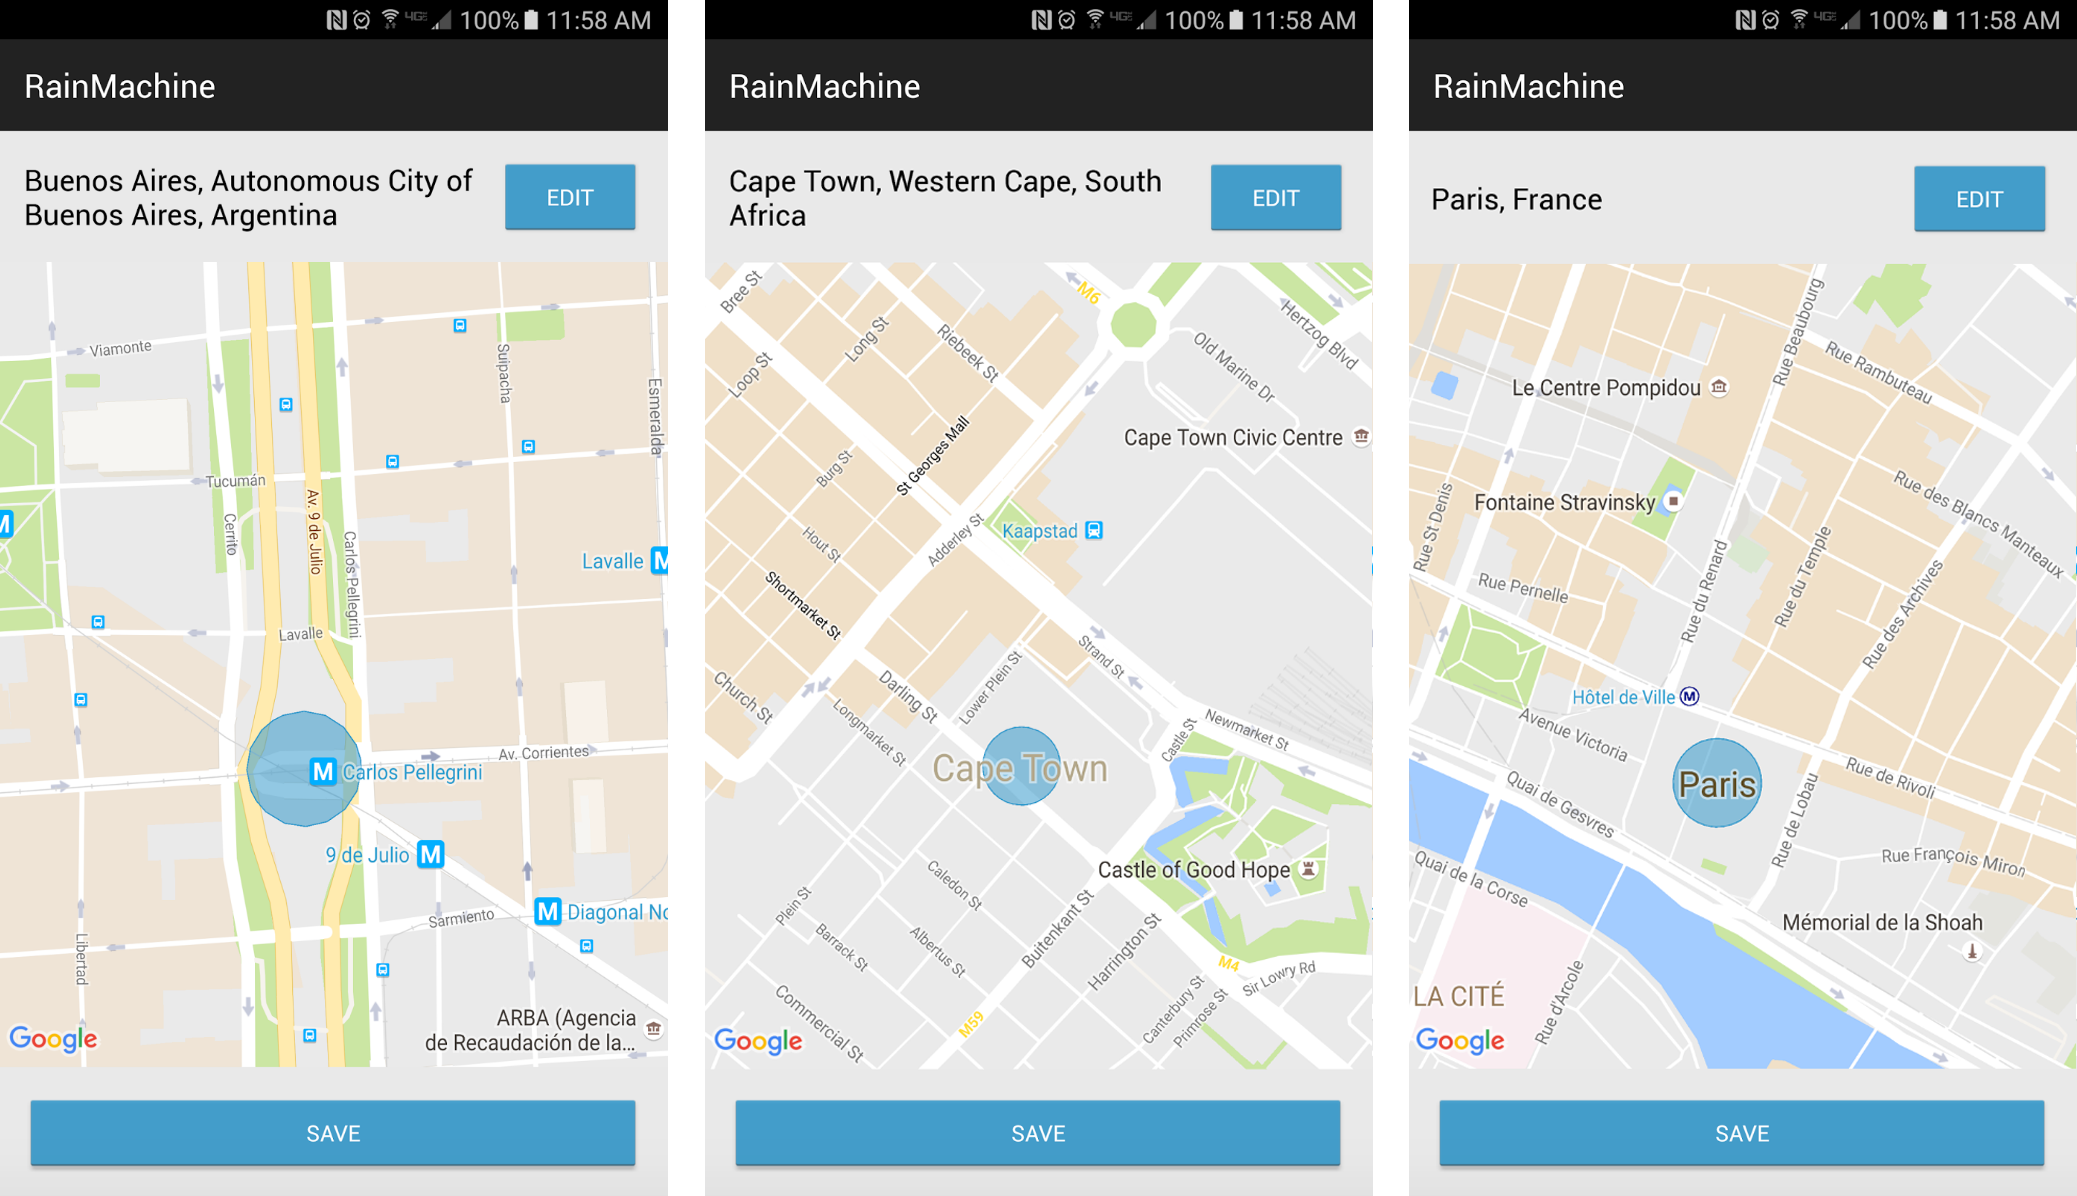 Option to choose RainMachine location by using RainMachine Android mobile application